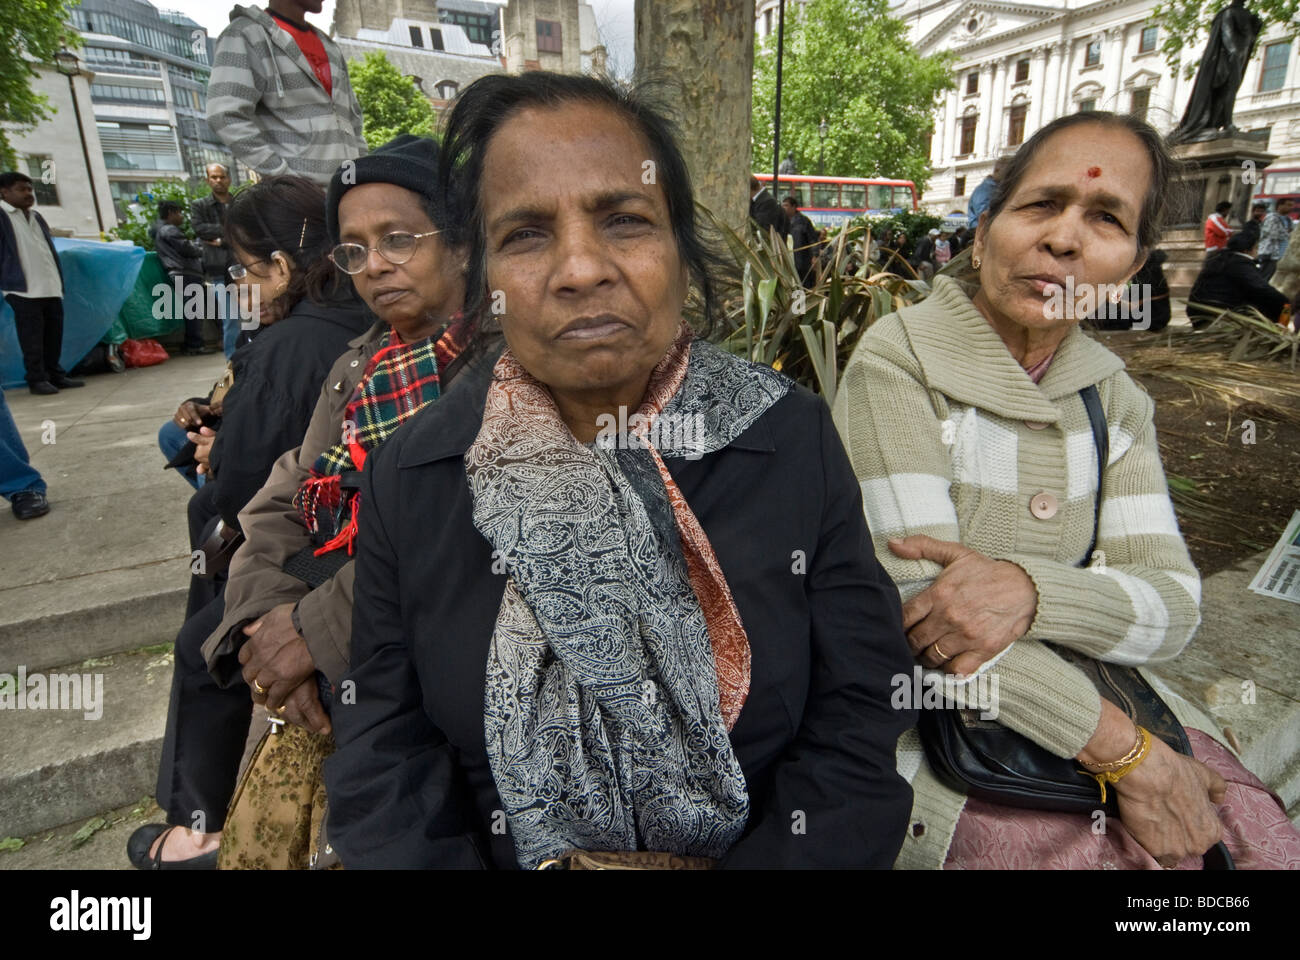 THREE TAMIL REFUGEE WOMAN/LONDON - Stock Image